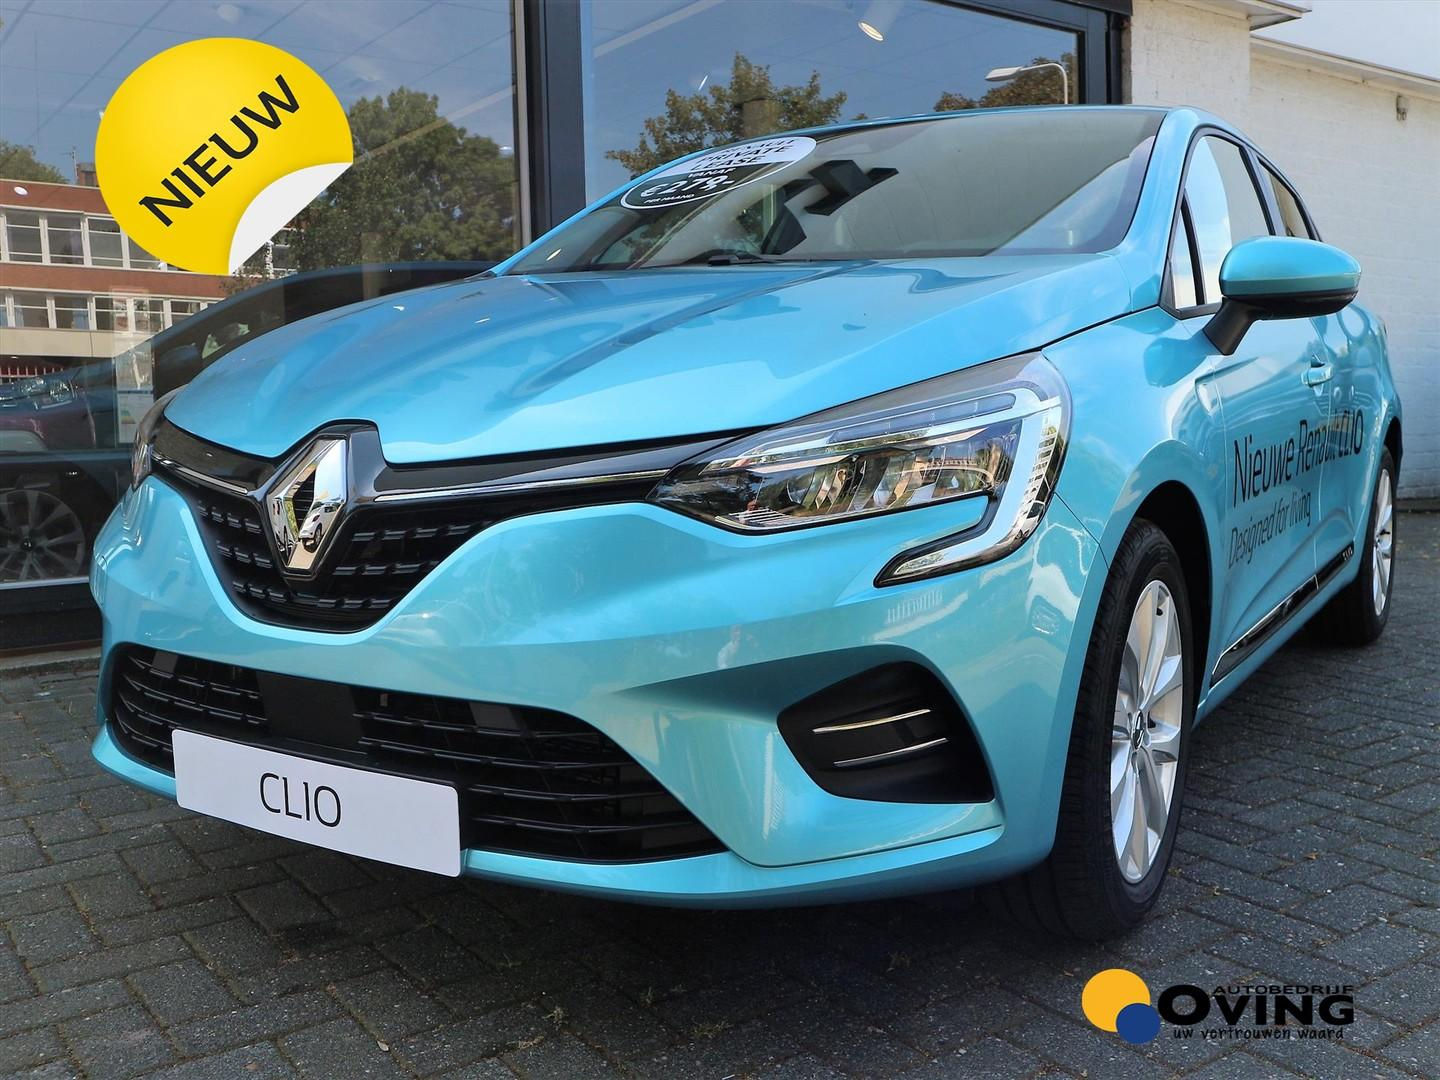 Renault Clio New 1.0 tce 100pk zen *private lease va.€ 279* fin va. 3,9%*